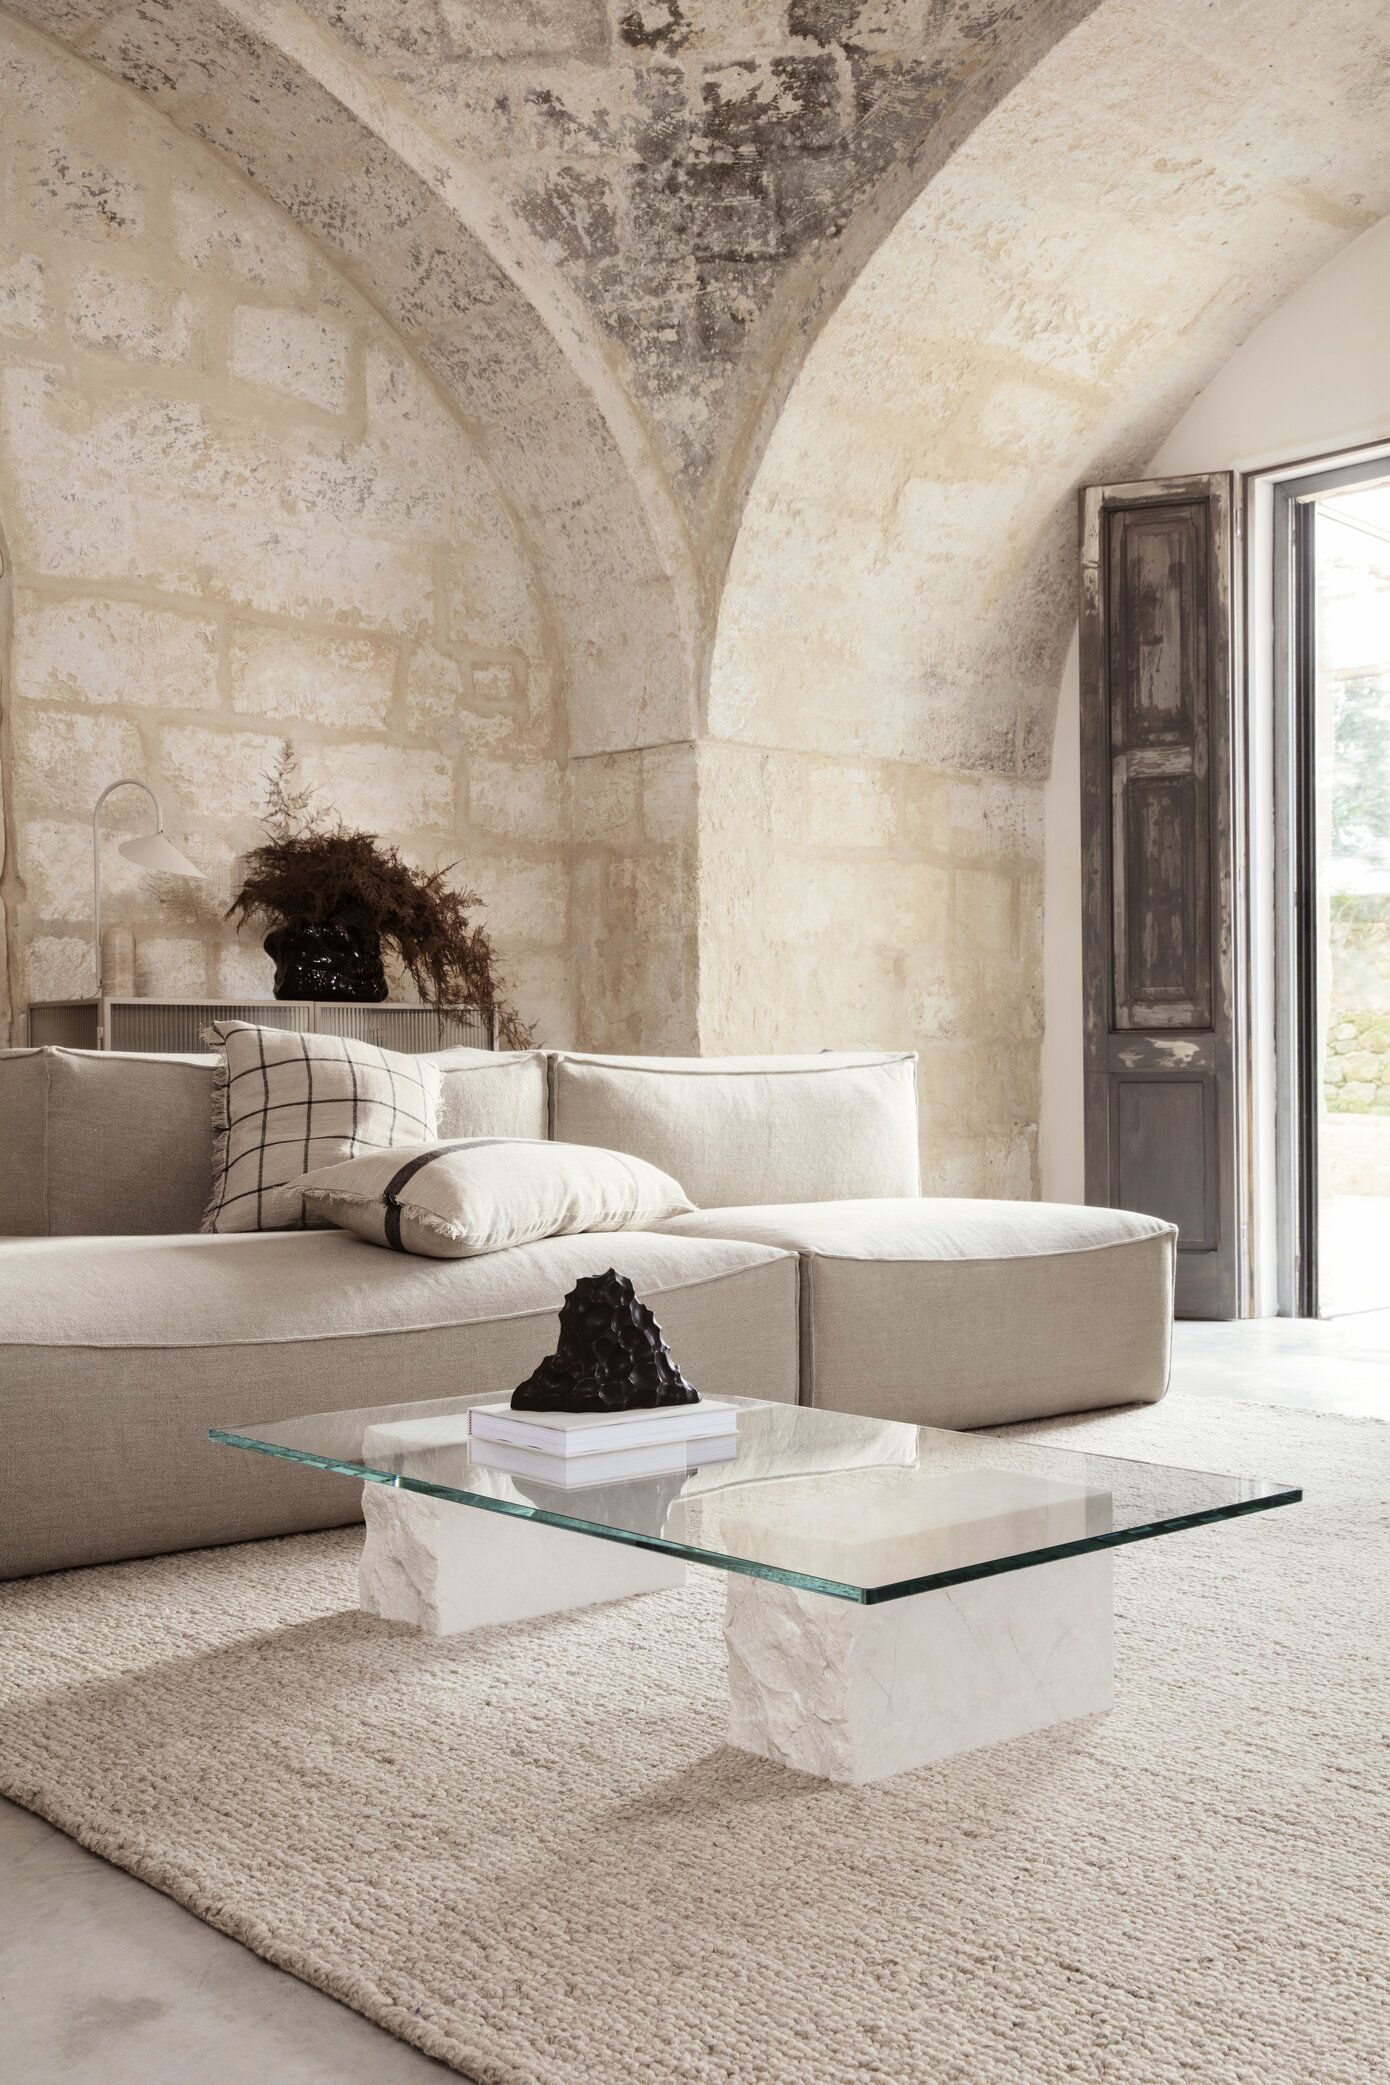 Catena The First Modular Sofa By Ferm Living April And May Stone Coffee Table Coffee Table Ferm Living [ 2085 x 1390 Pixel ]